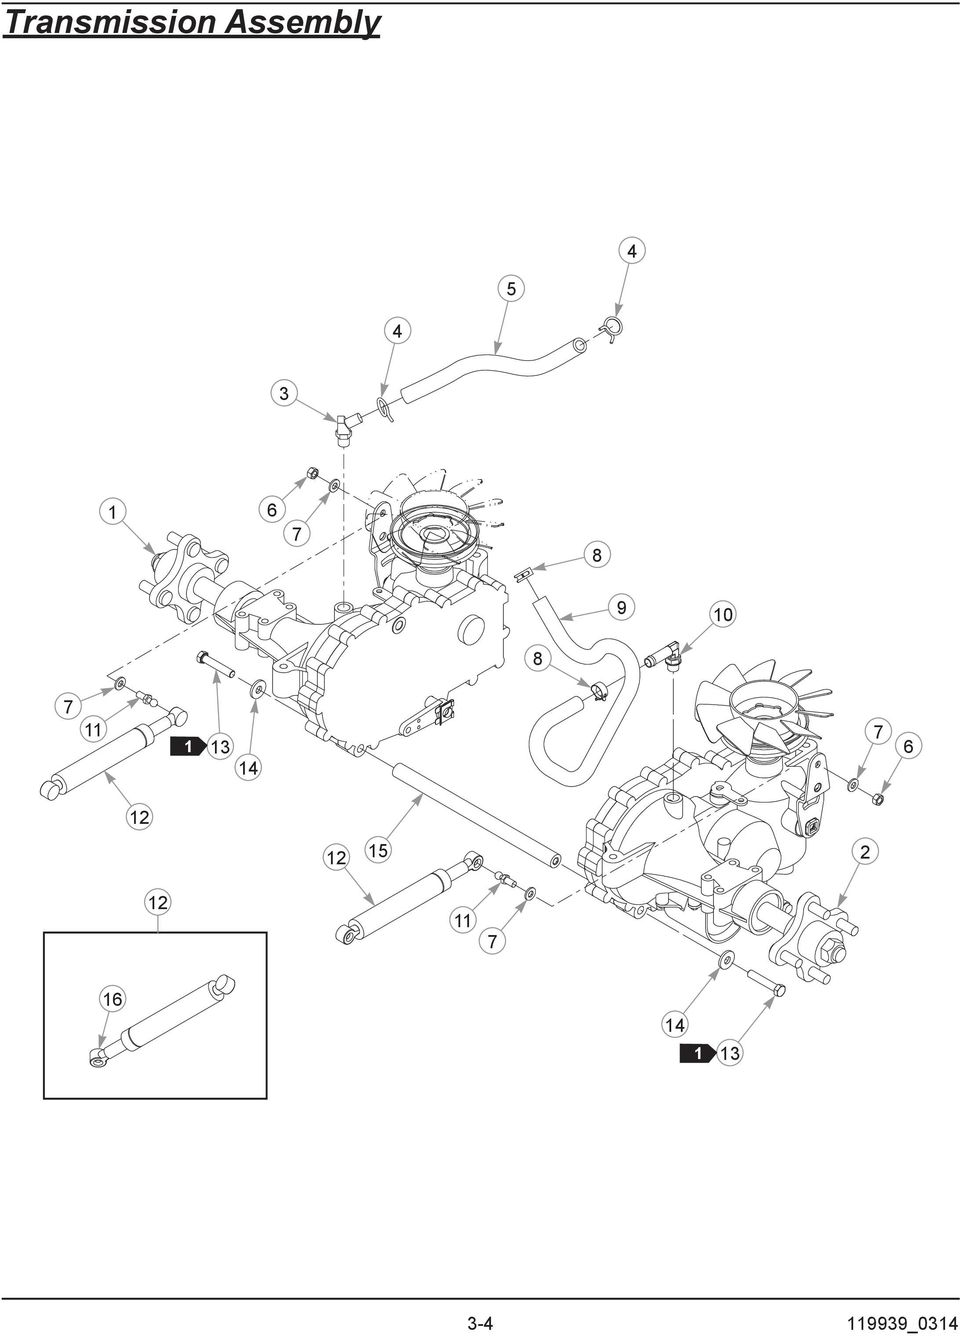 150cc Gy6 Engine Manual Wiring Diagram And Go Kart Schematic For Br150s On